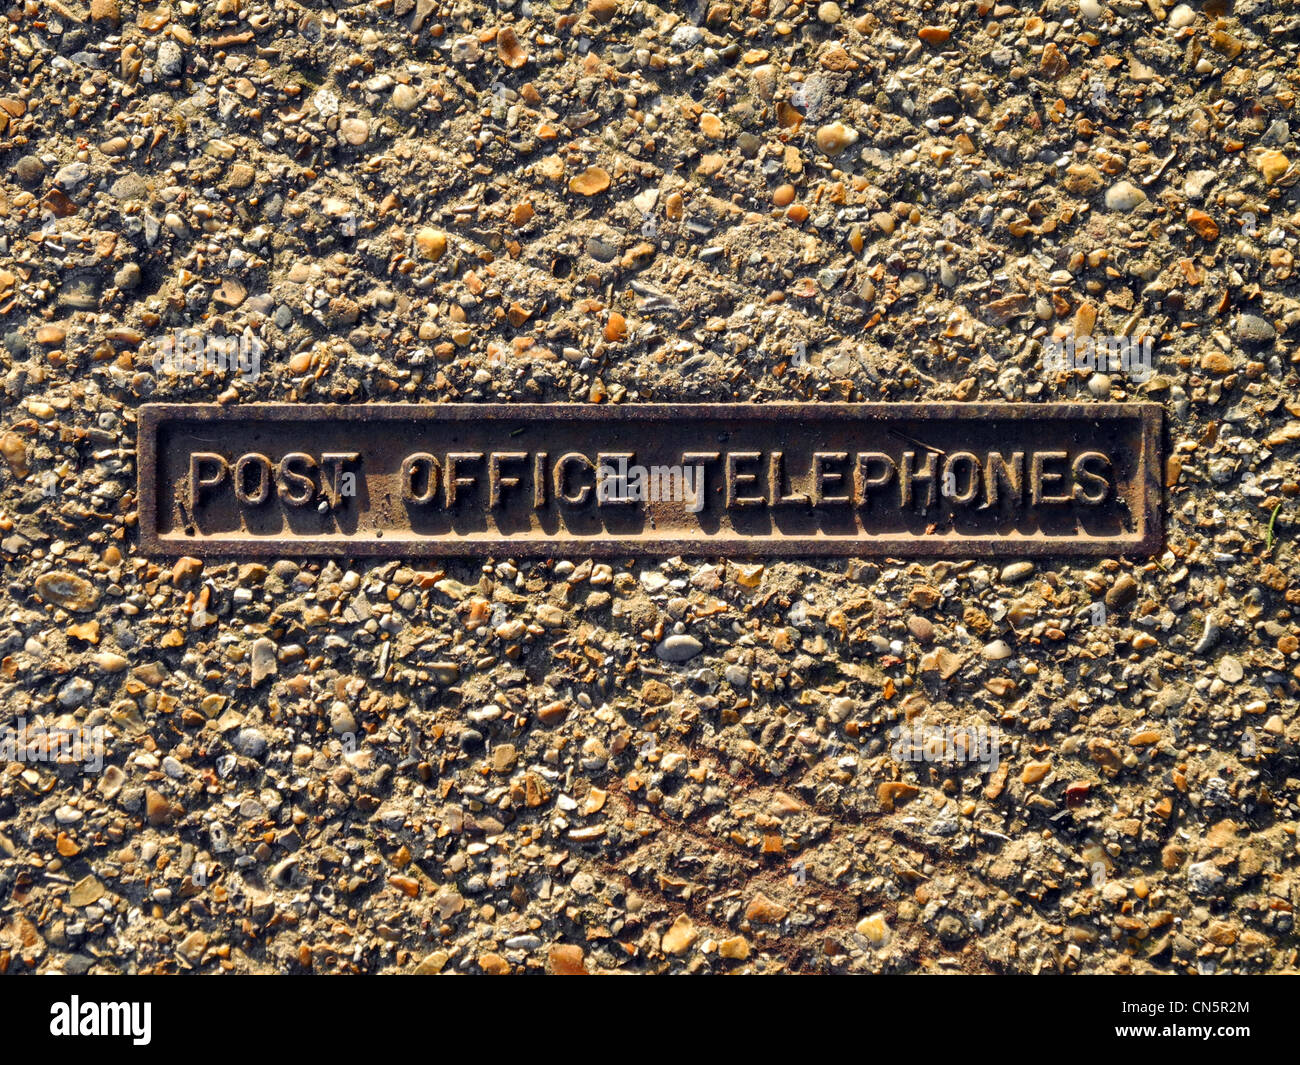 Old Post Office Telephones access cover in pavement - Stock Image